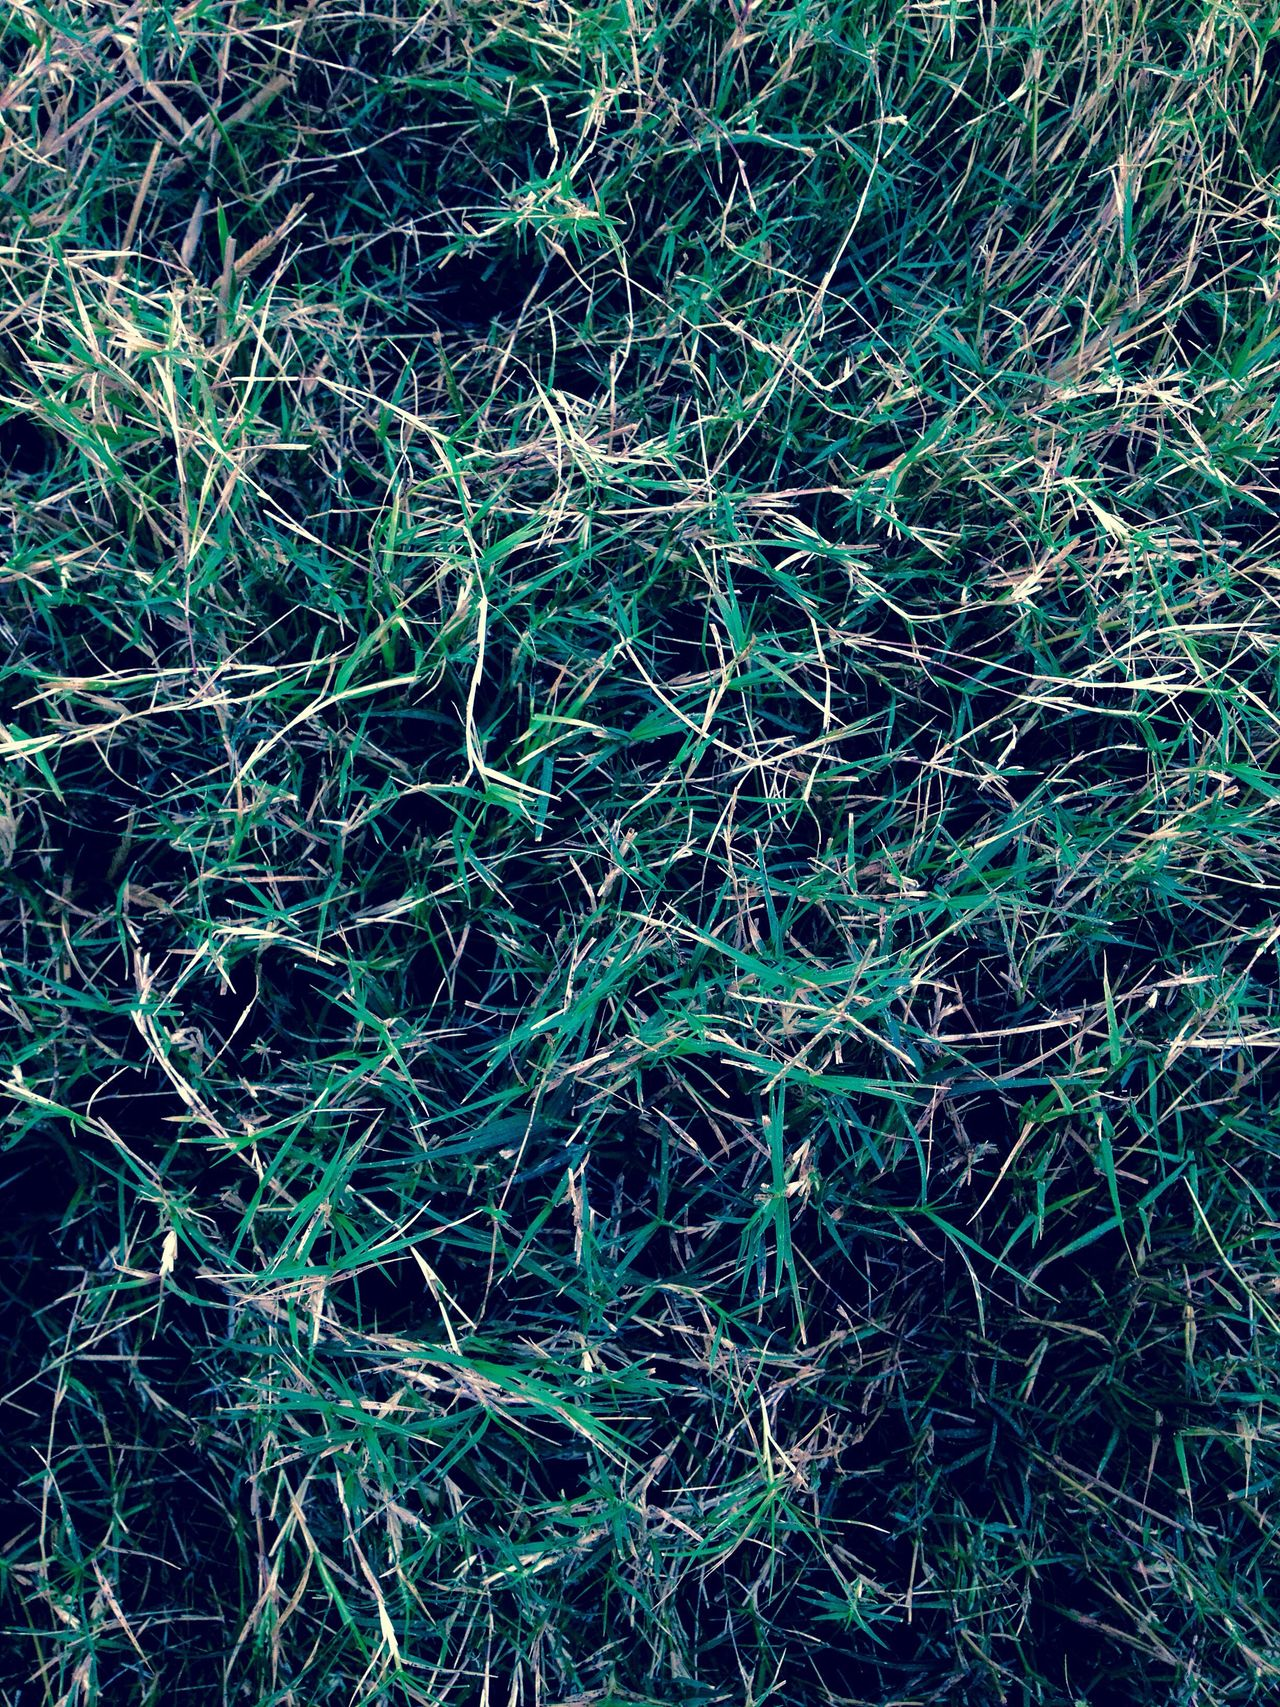 Green Color Green Greenery Grass IPhoneography Iphoneonly IPhone Iphonephotography Iphonesia IPhone 4S IPhone Photography IPhone4s Mobilephotography Mobile Photography Bangalore India